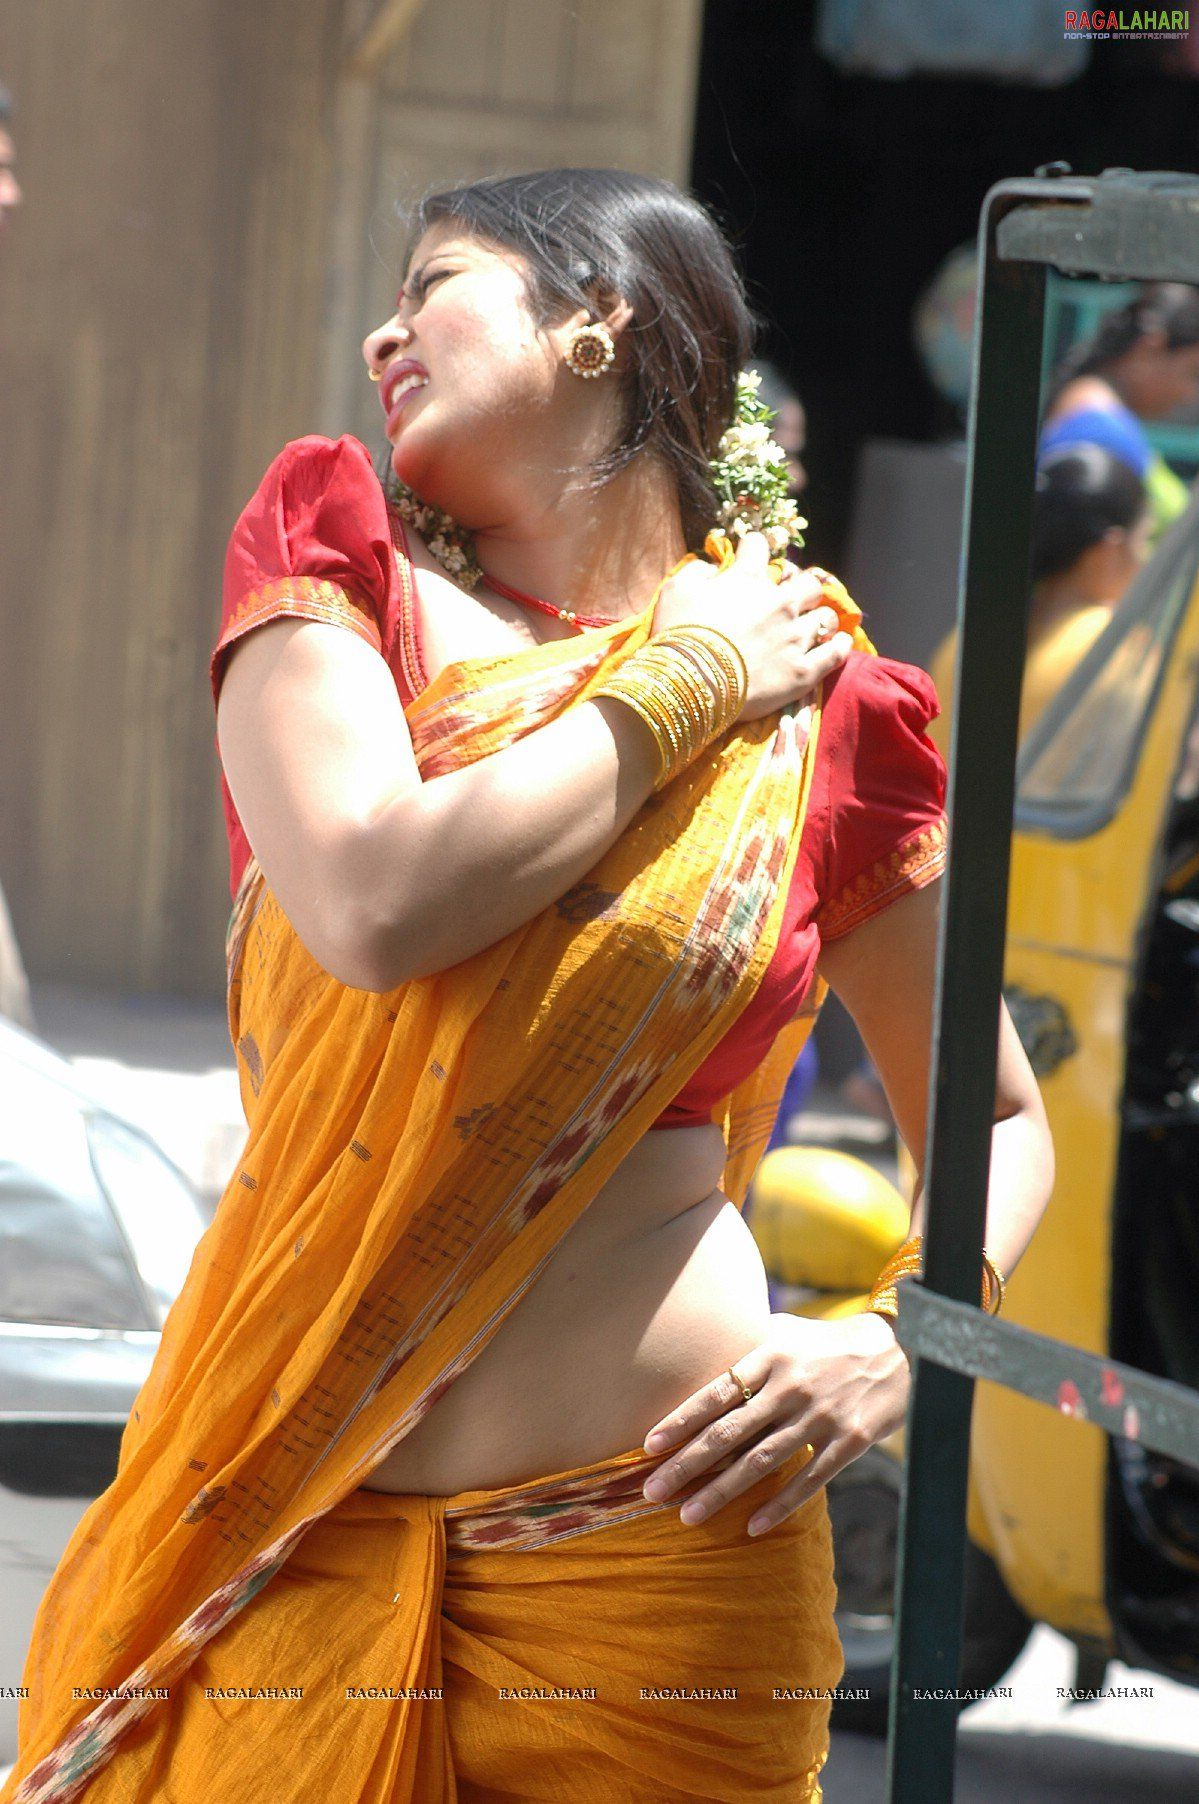 Amusing Indian tamil actress sangeetha nude right!